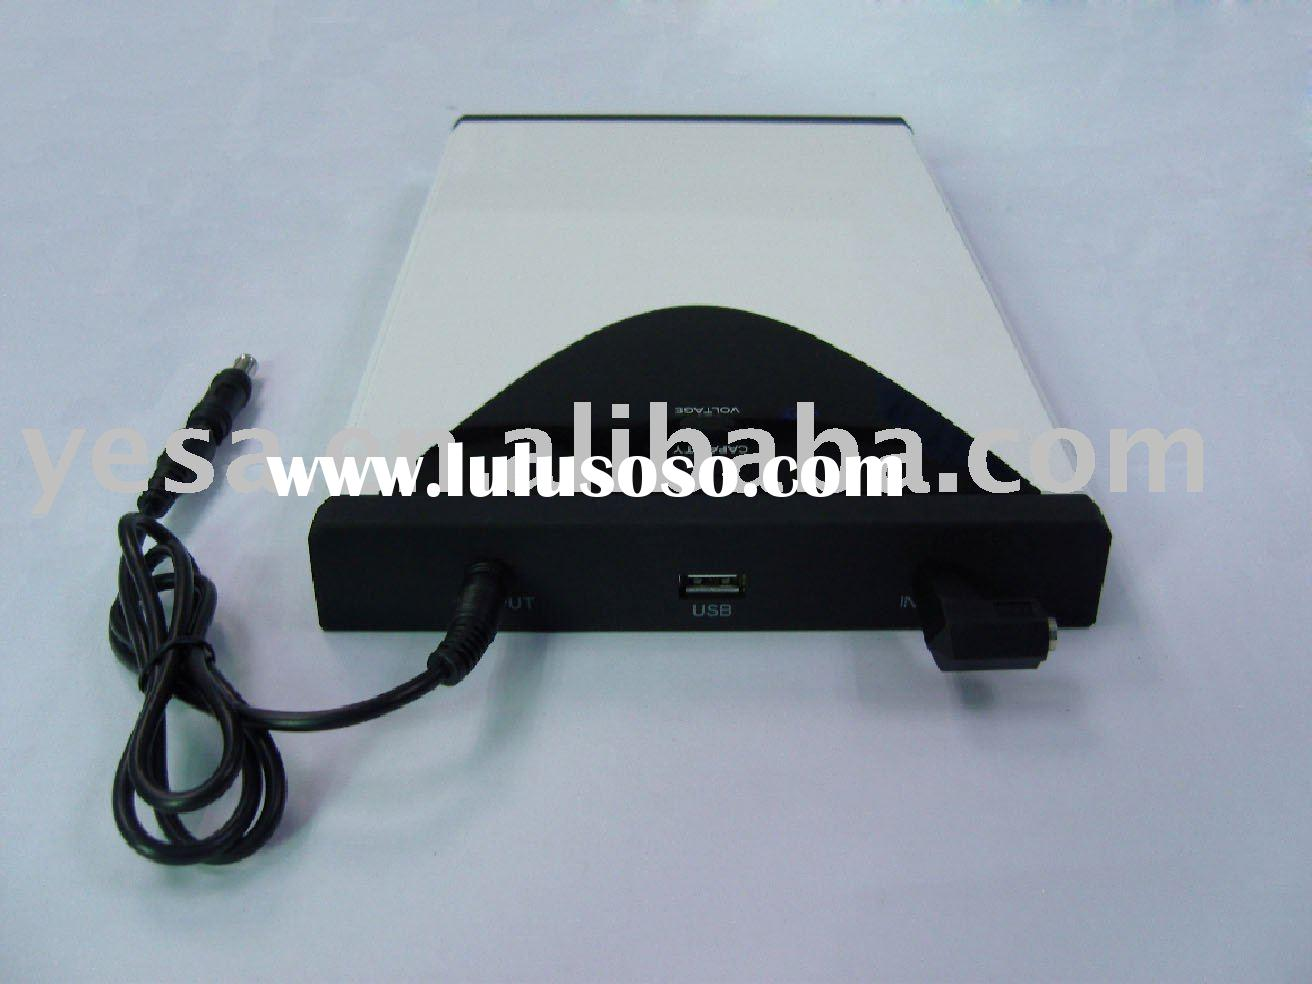 External battery pack and charger for phone/MP3/laptop/Digital Devices